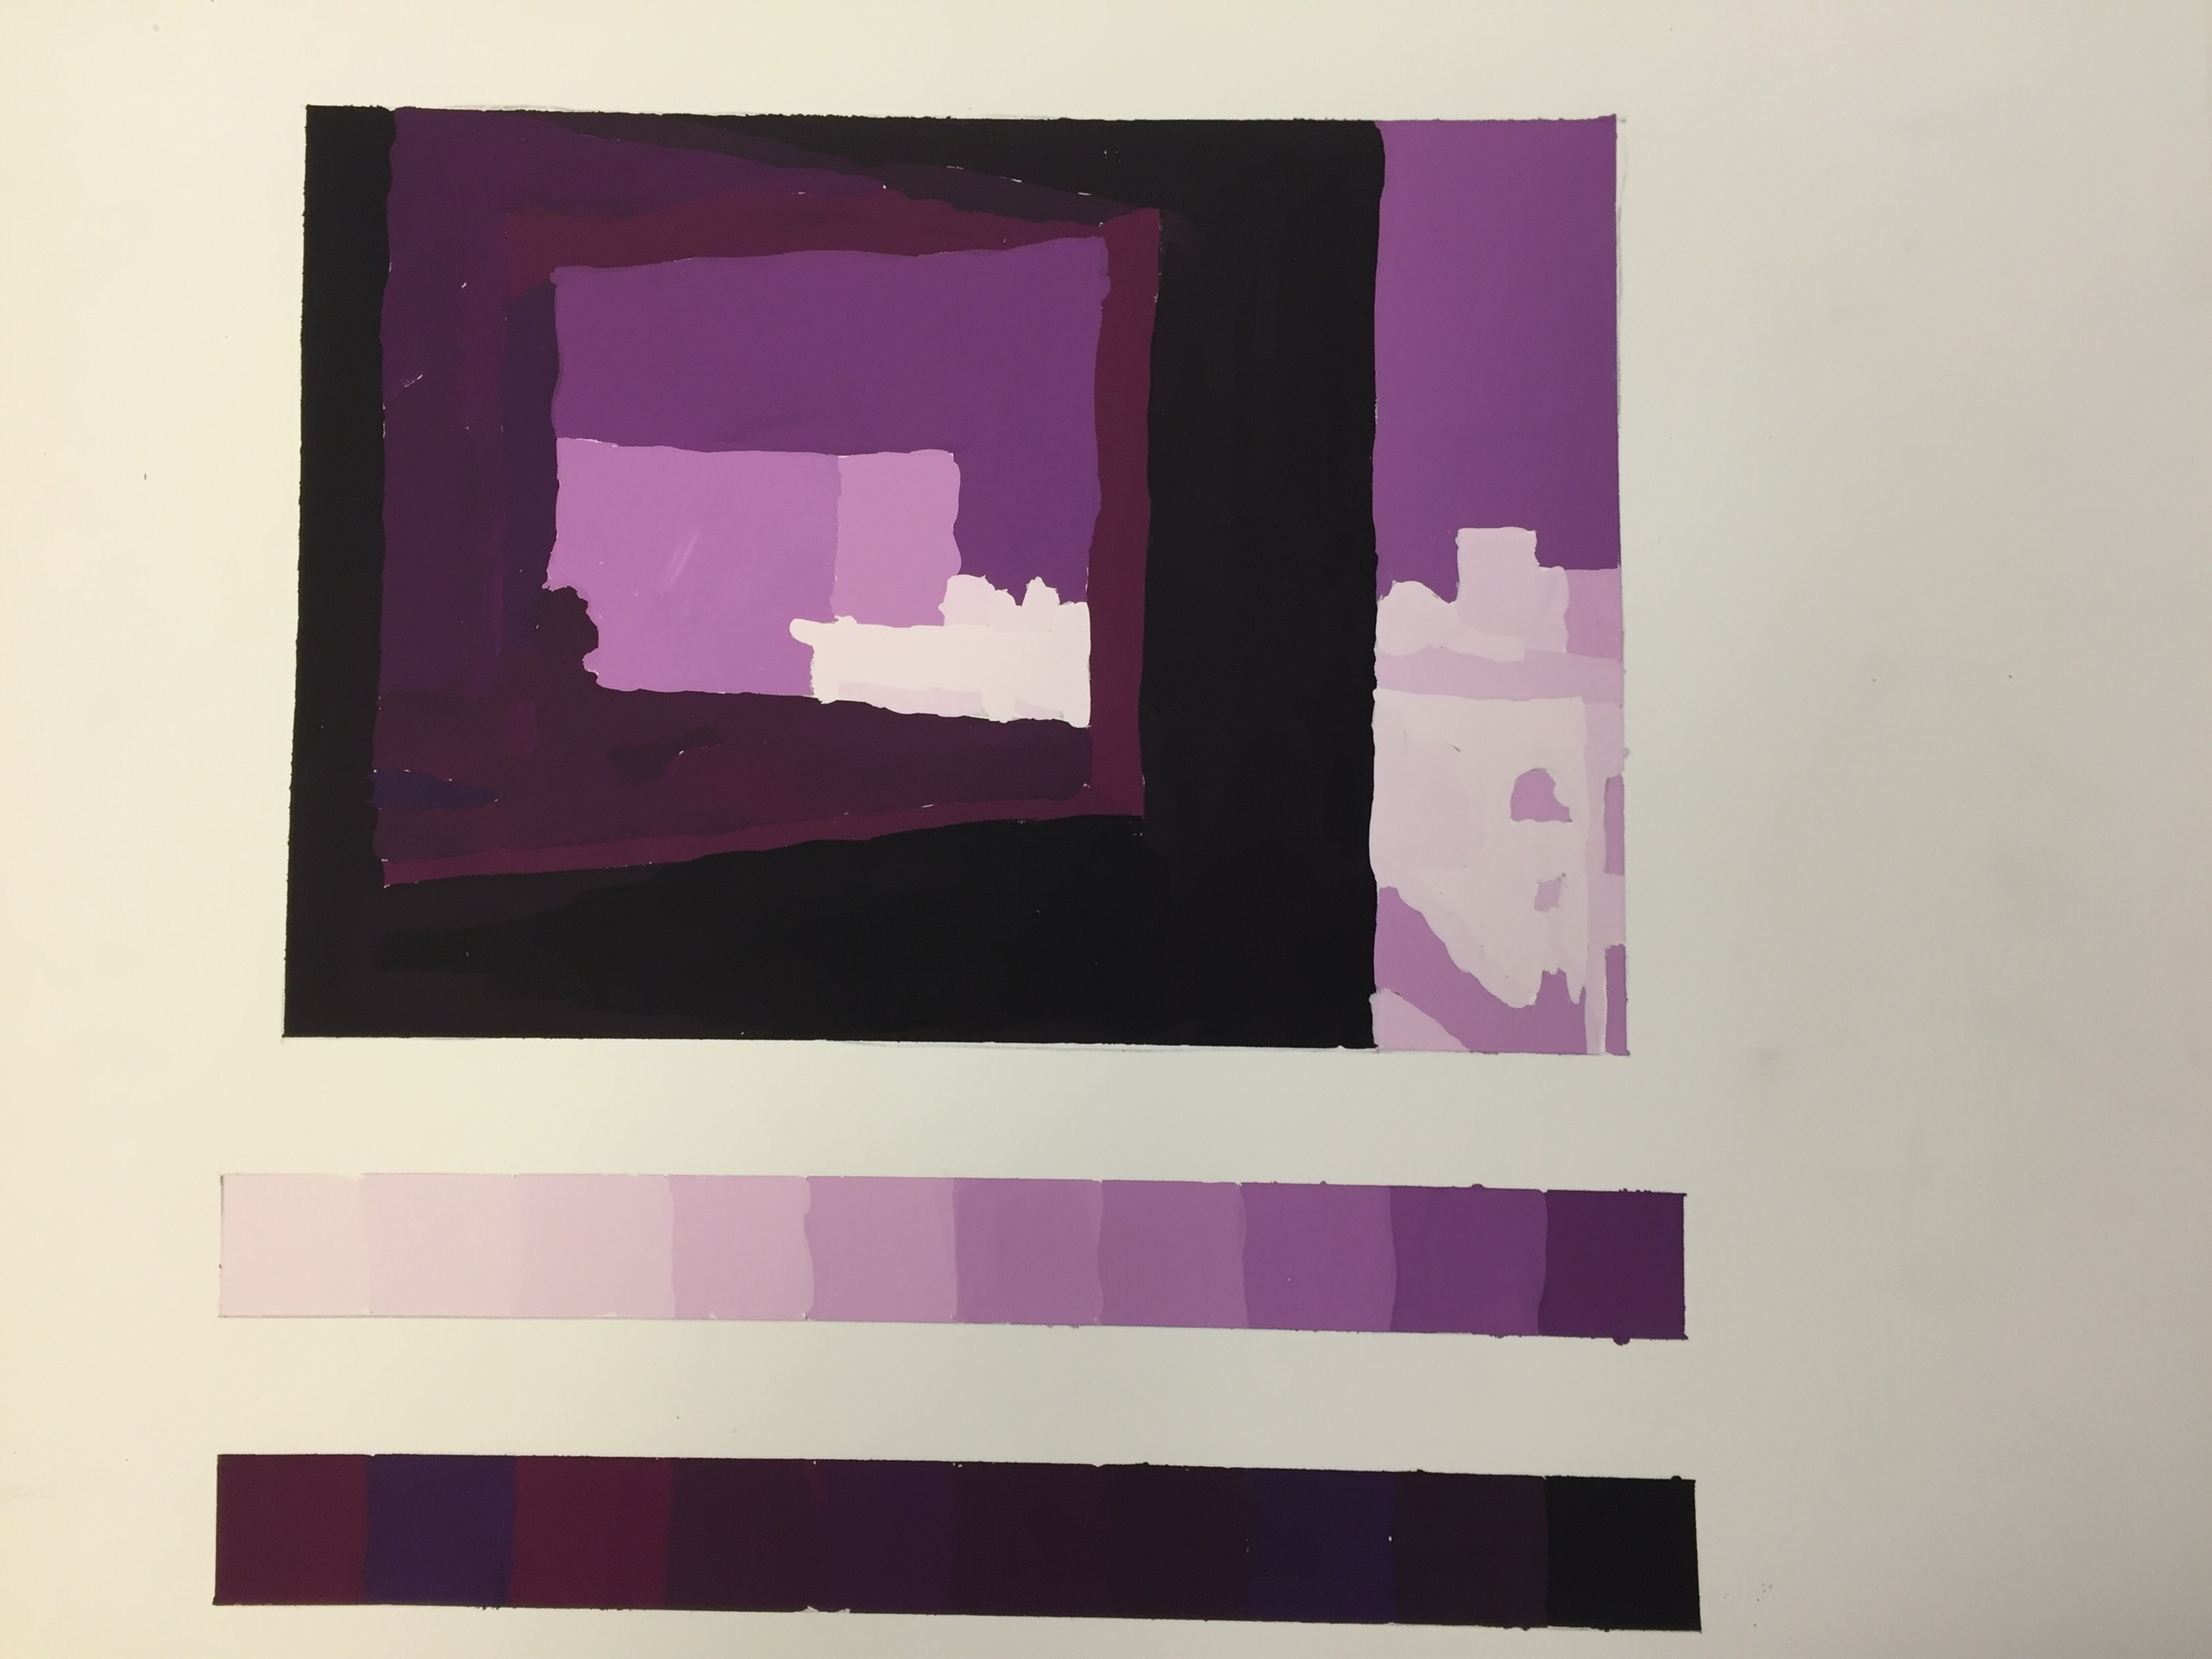 Office in a Small City, Object Color (Purple) Deconstruction